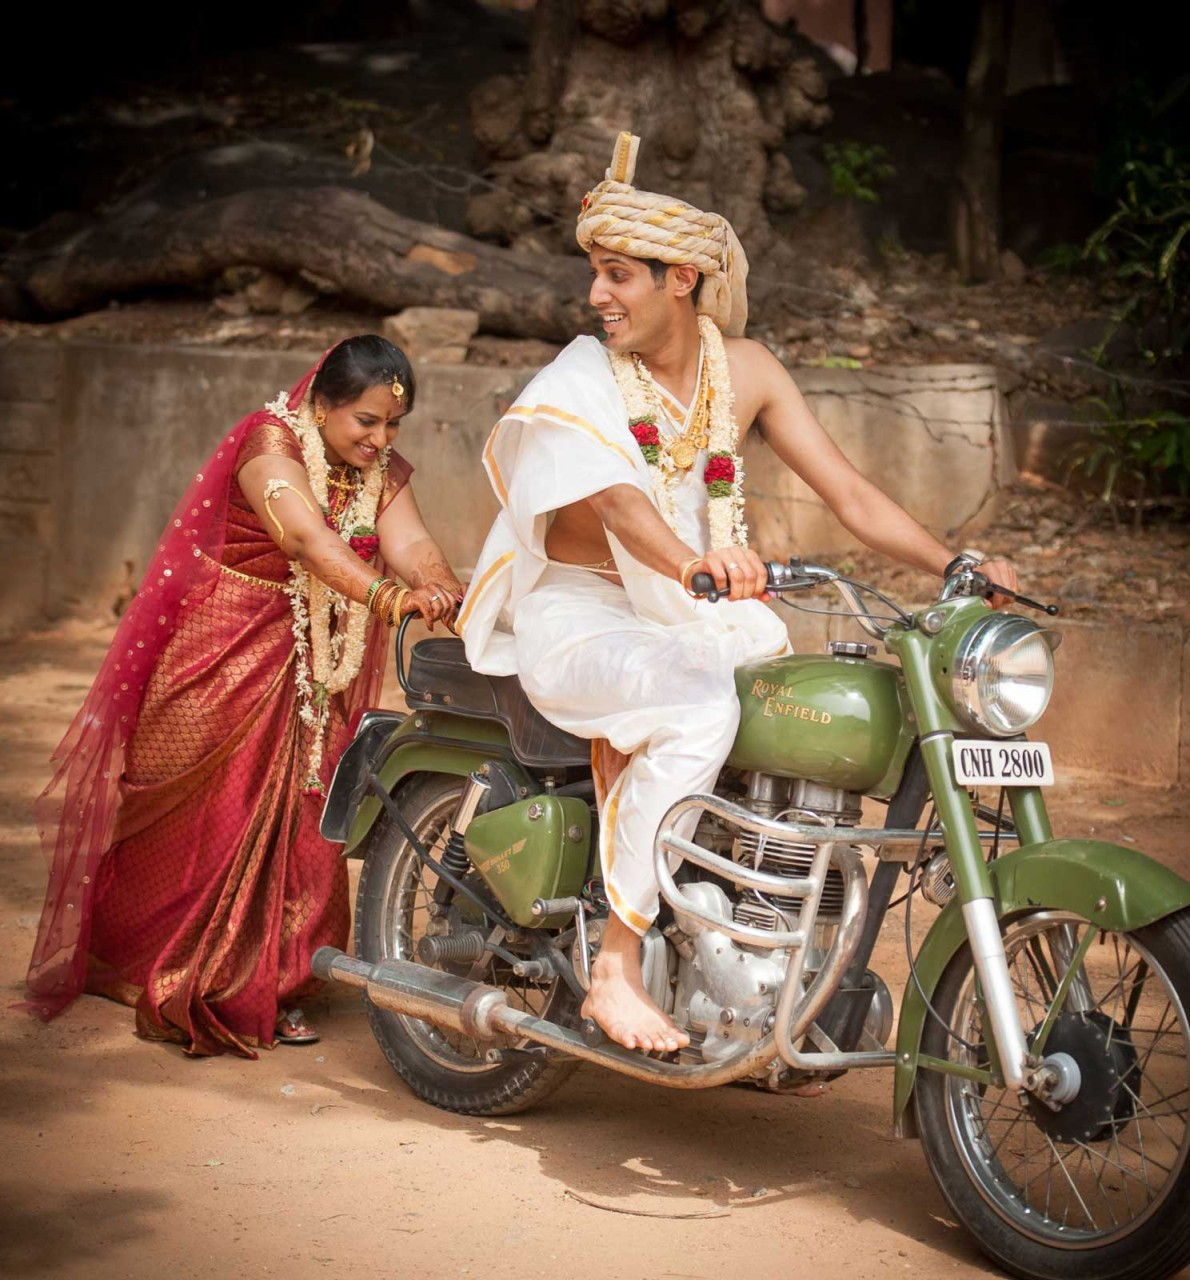 Best Wedding Photographer Bangalore | Royal Enfield Bullet Couple Wedding Photography